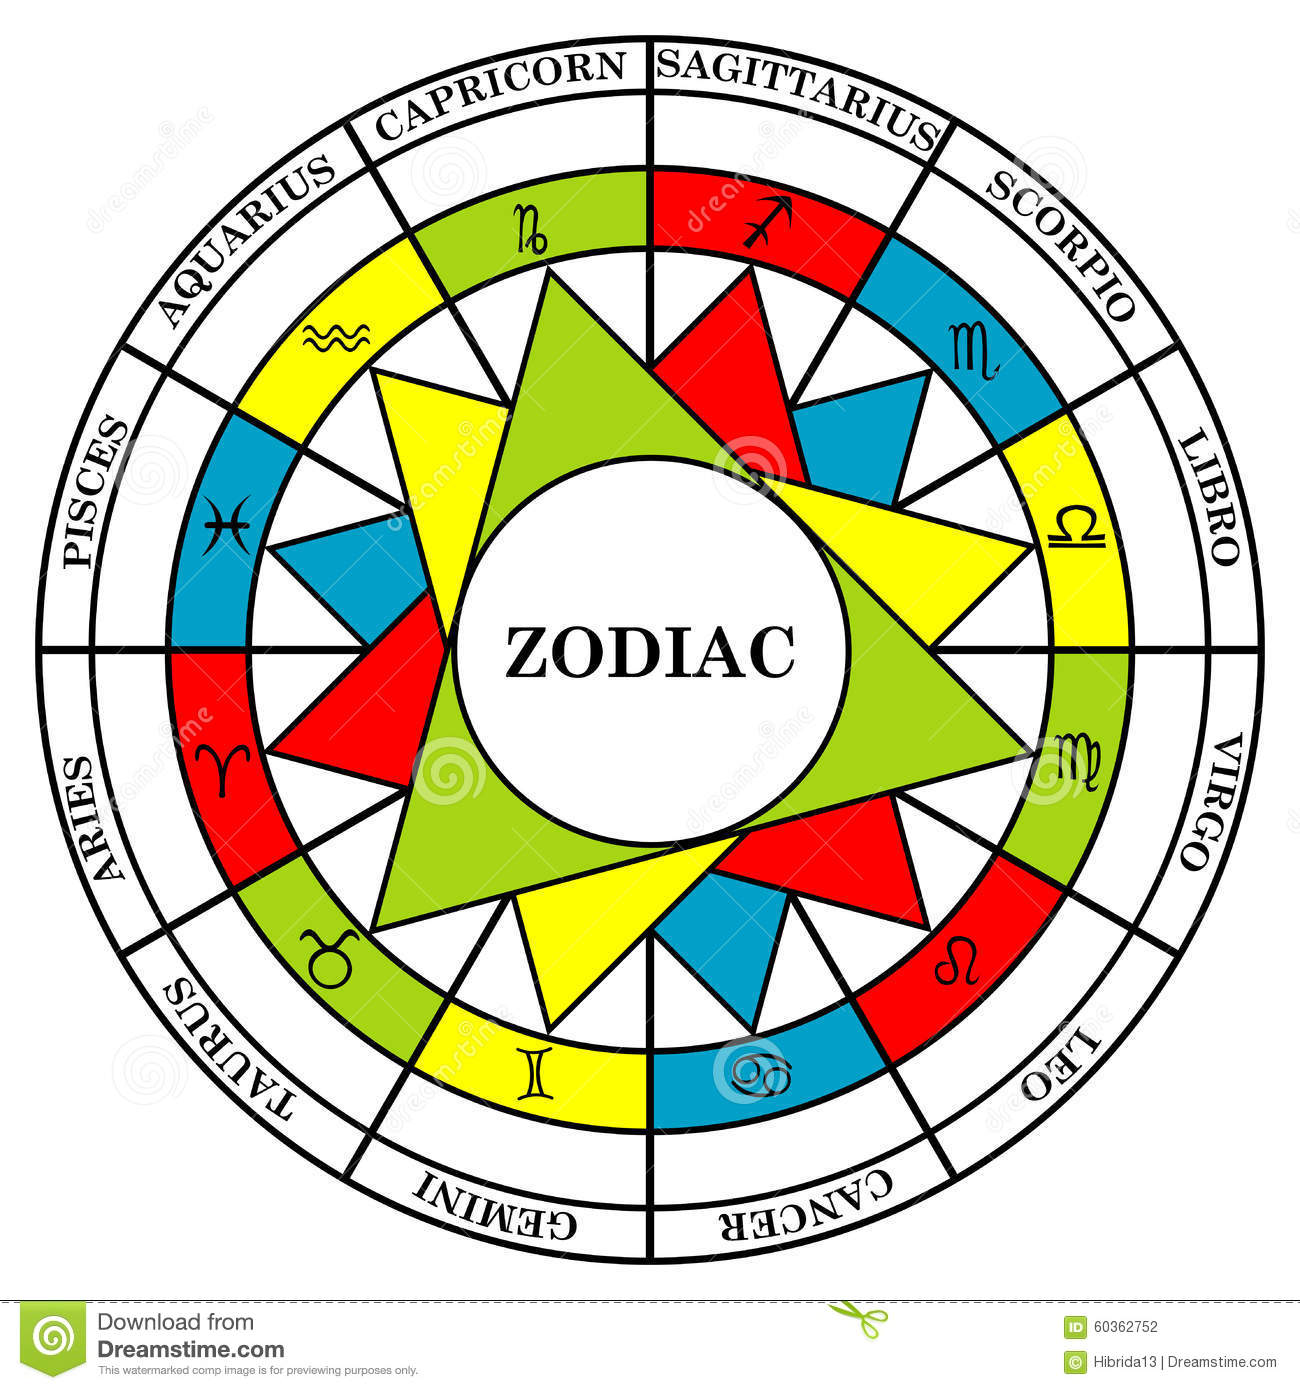 Astrology signs of the zodiac ided into elements fire water air